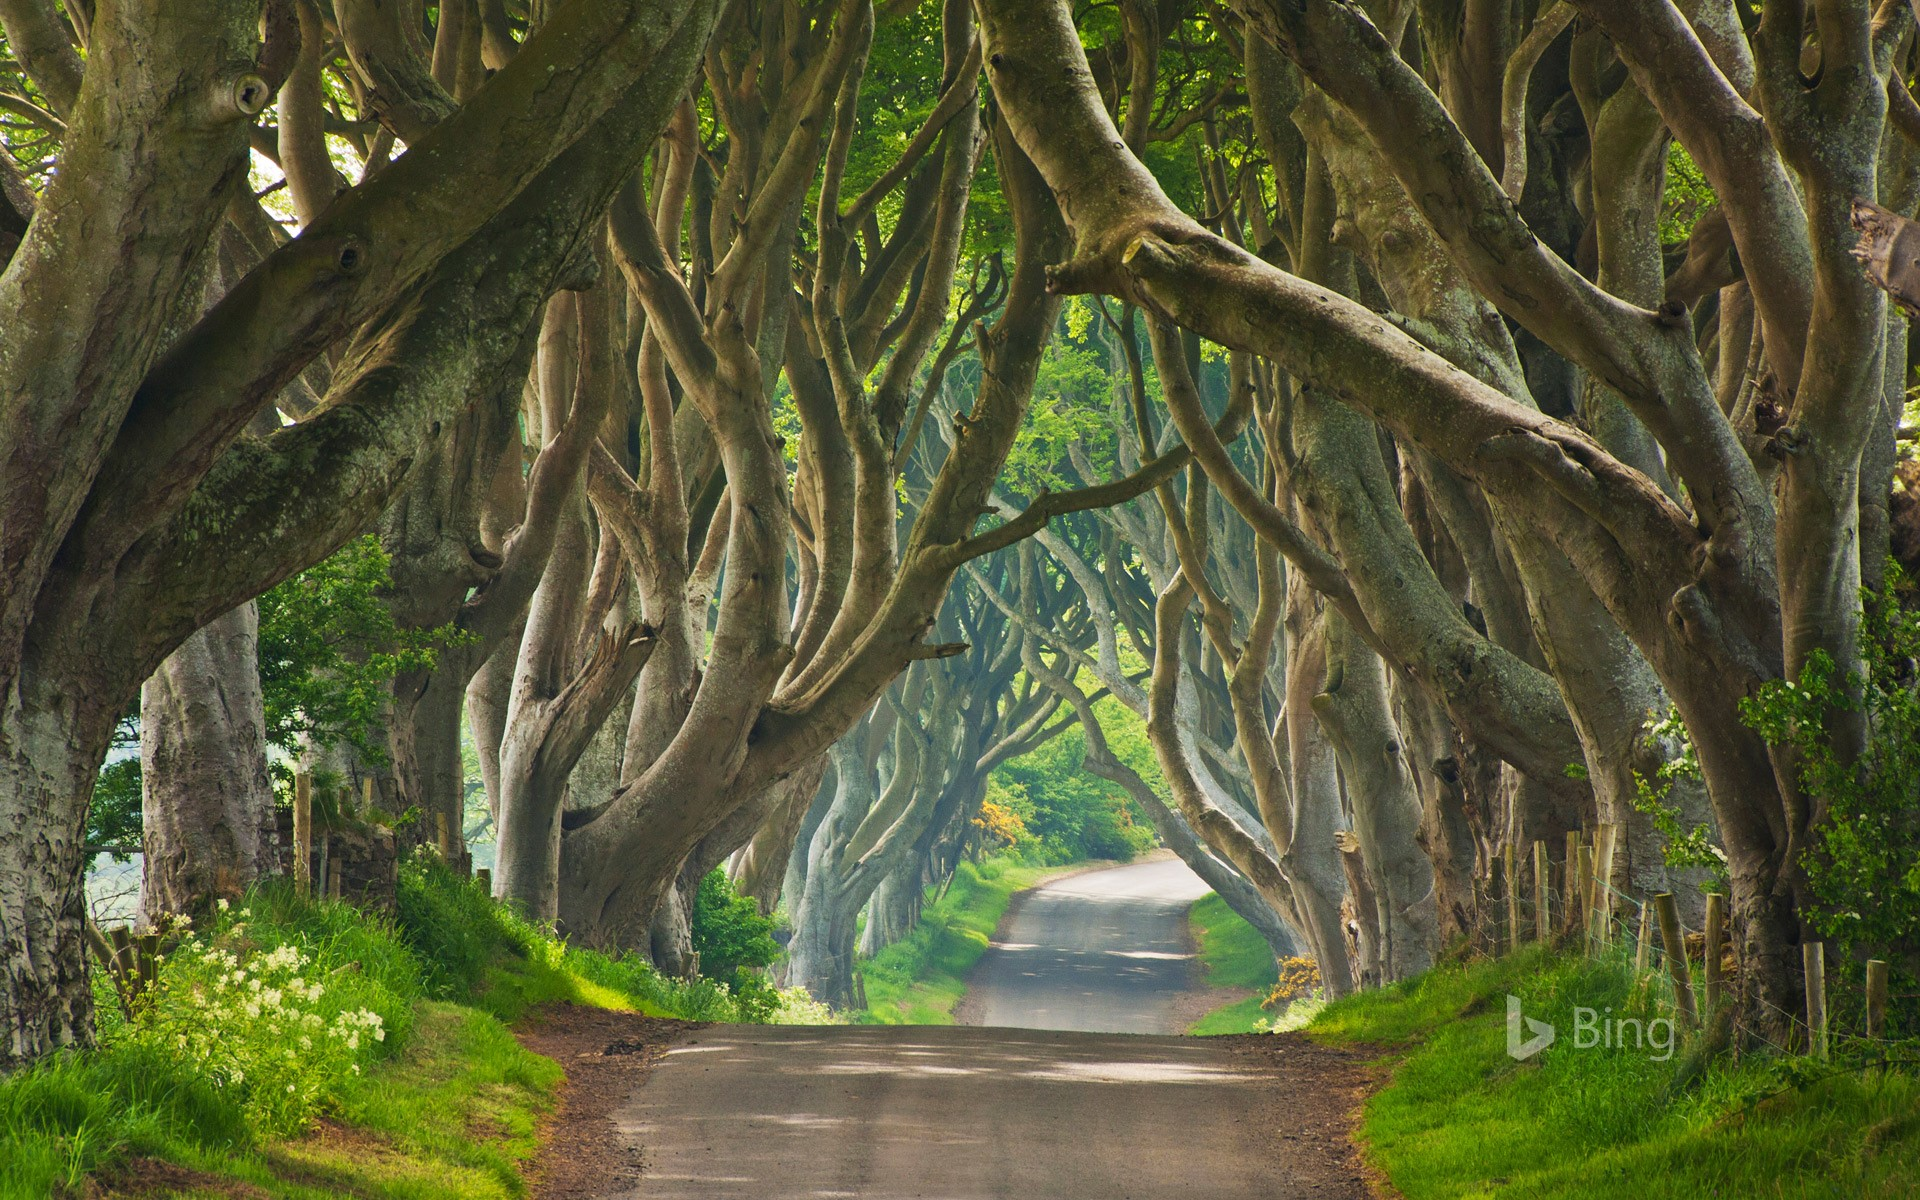 An avenue of beech trees known as 'Dark Hedges' in Ballymoney, Northern Ireland